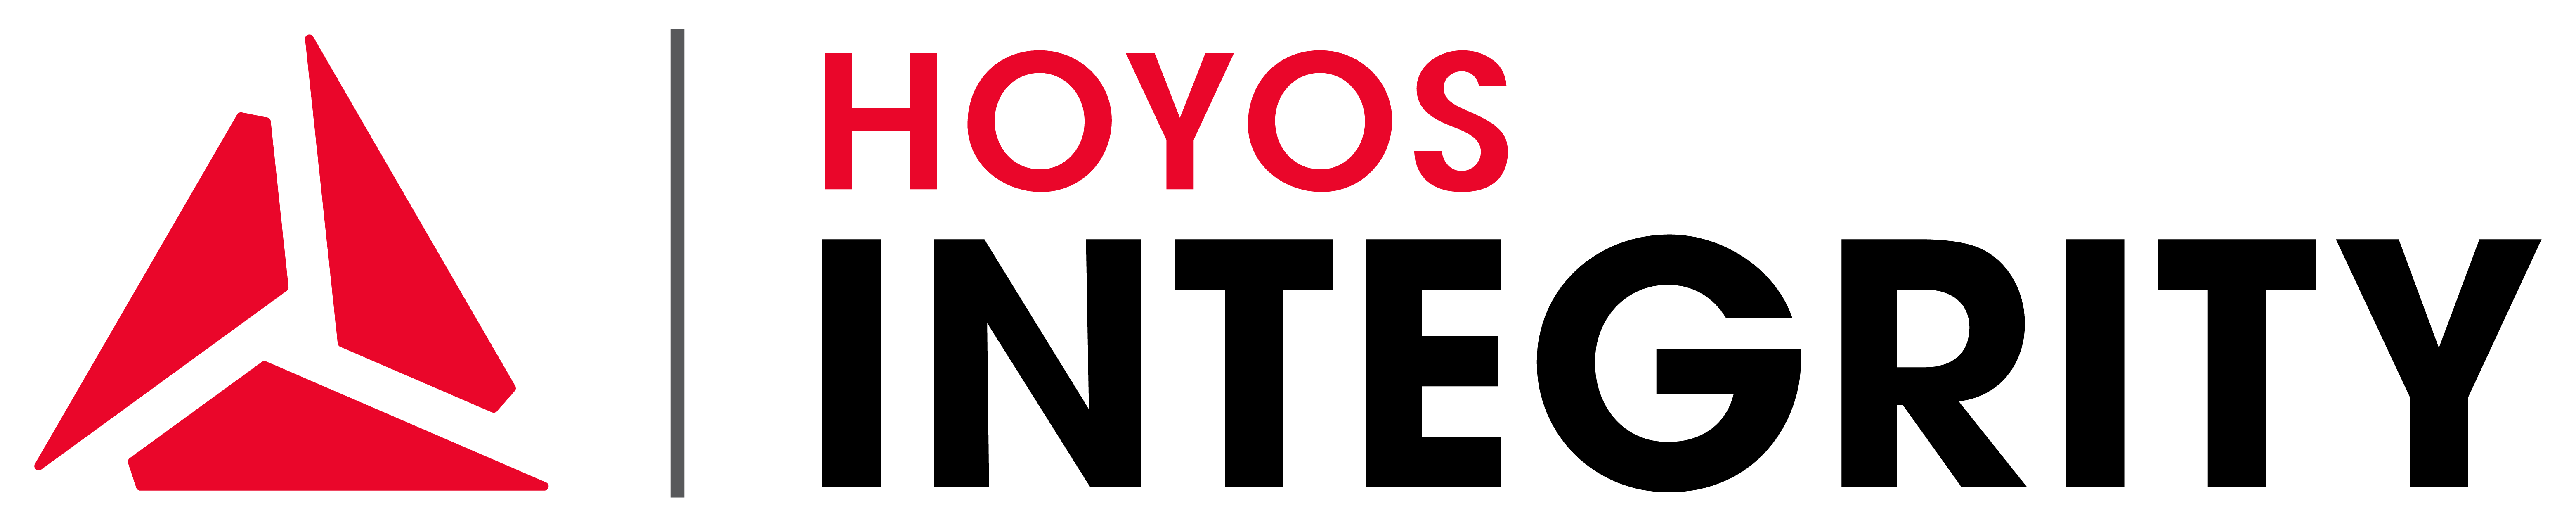 Hoyos Integrity Corporation